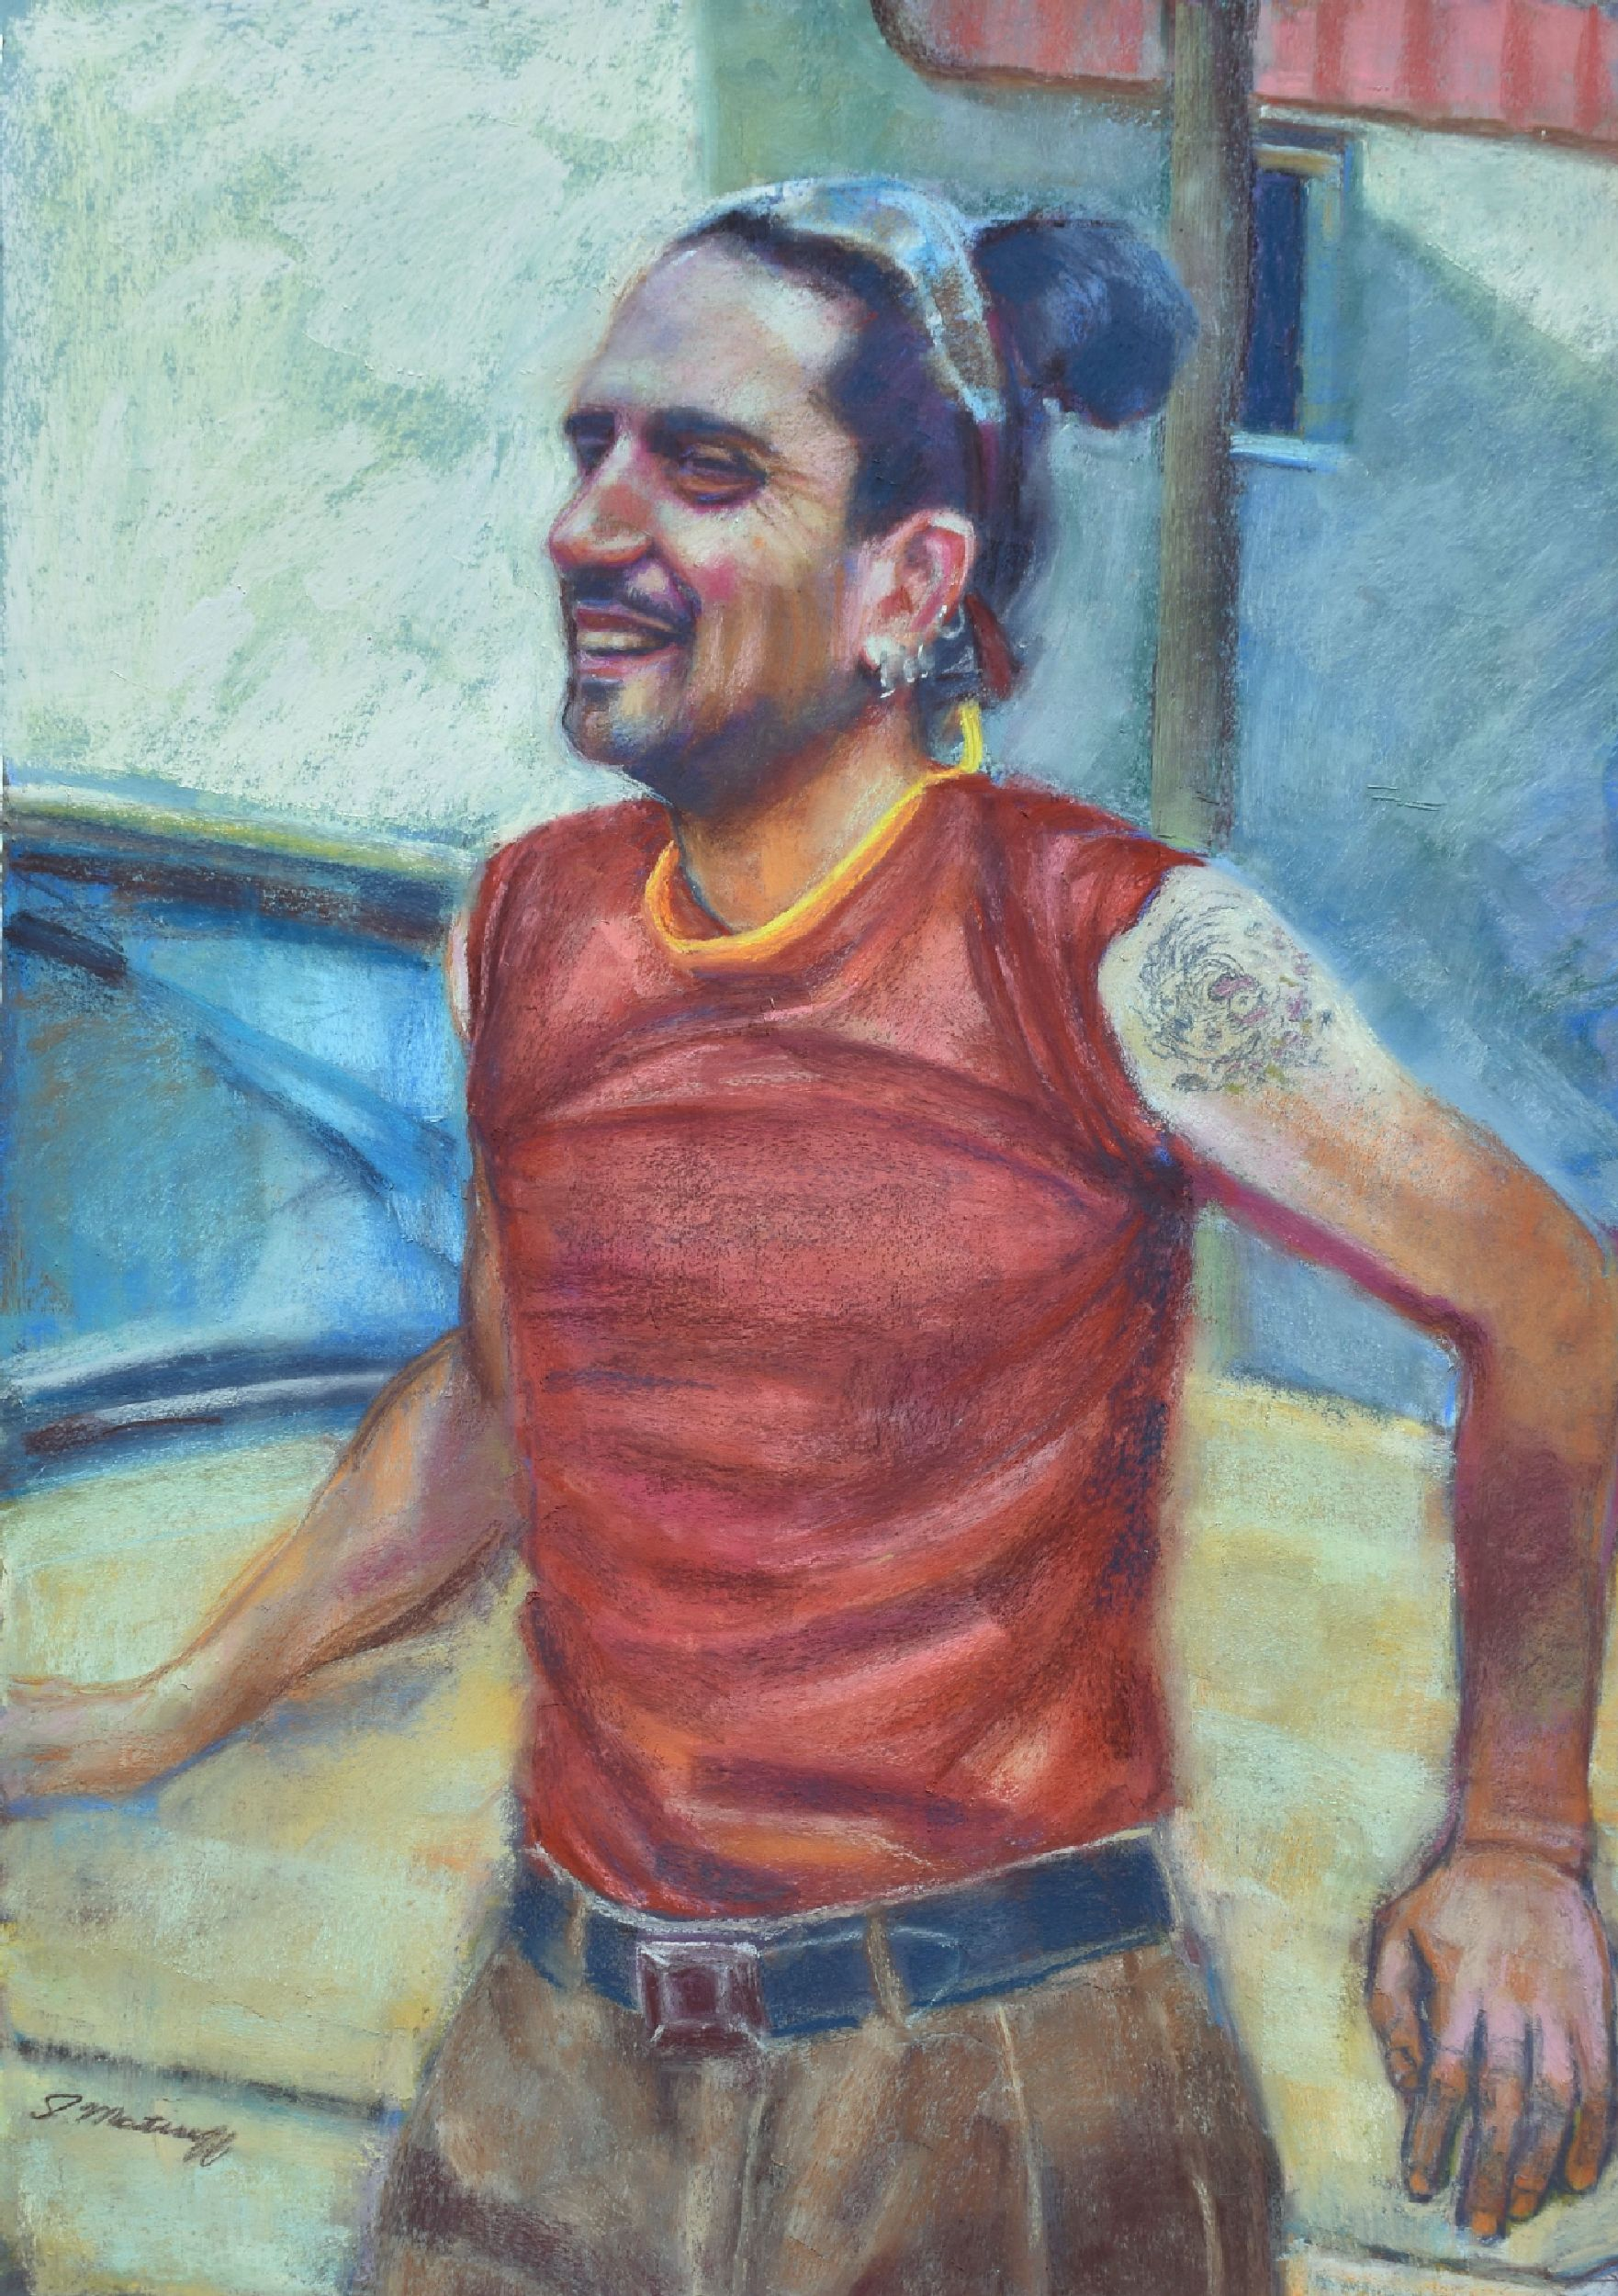 """Chillin'"" by Sharon Matisoff, 27x19in, pastel on sanded paper (2017)"